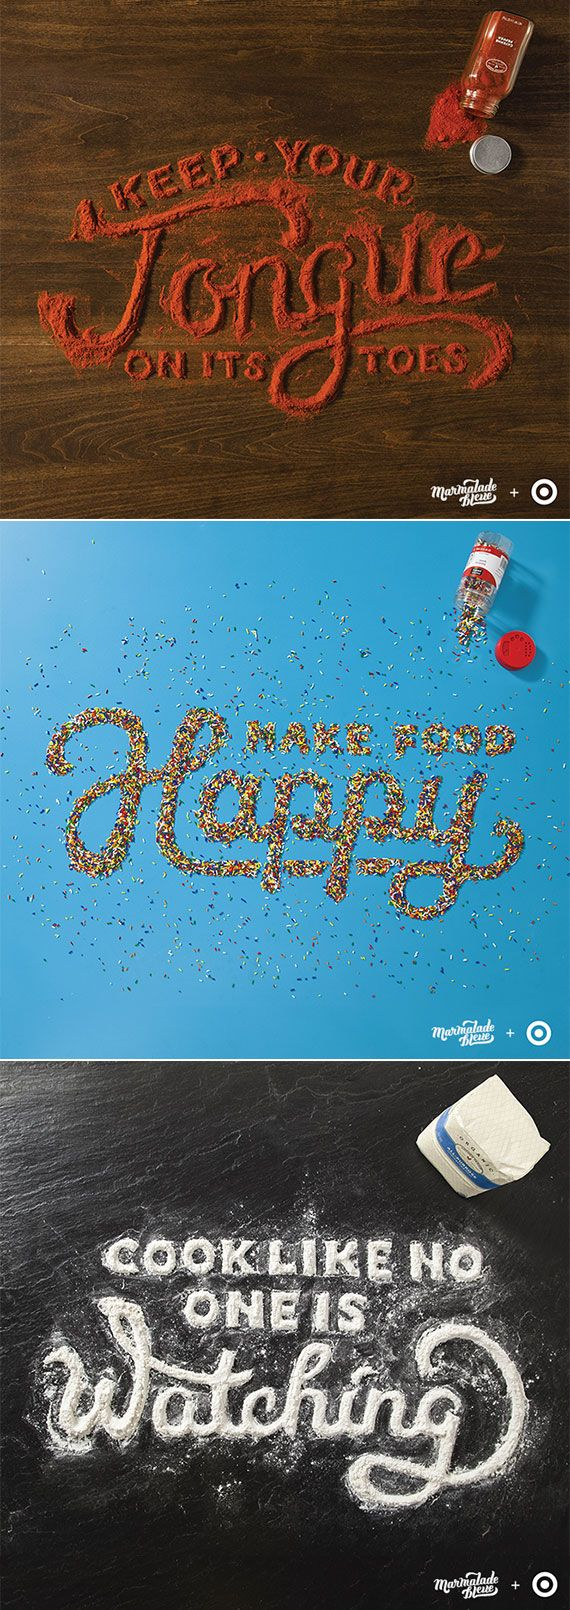 food typography by Danielle Evans for Target @Annie Compean Compean Tyner this reminds me of you